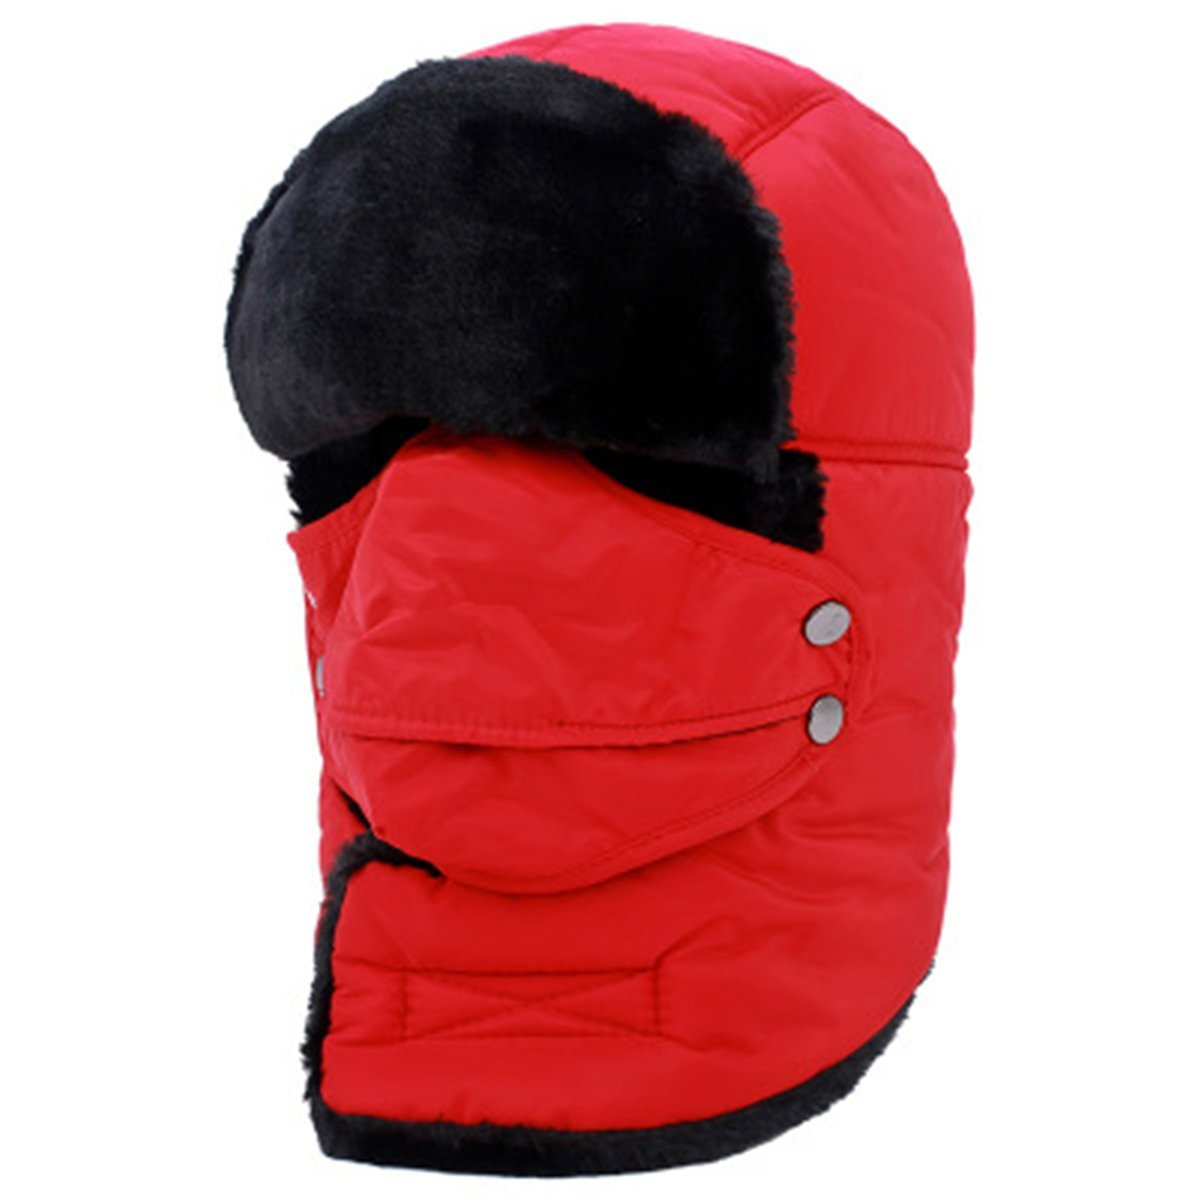 Men's Trapper Hat Winter Ski Hat with Winter Ear Flap and Ski Windproof Mask 39 TYJ2017122102B-O